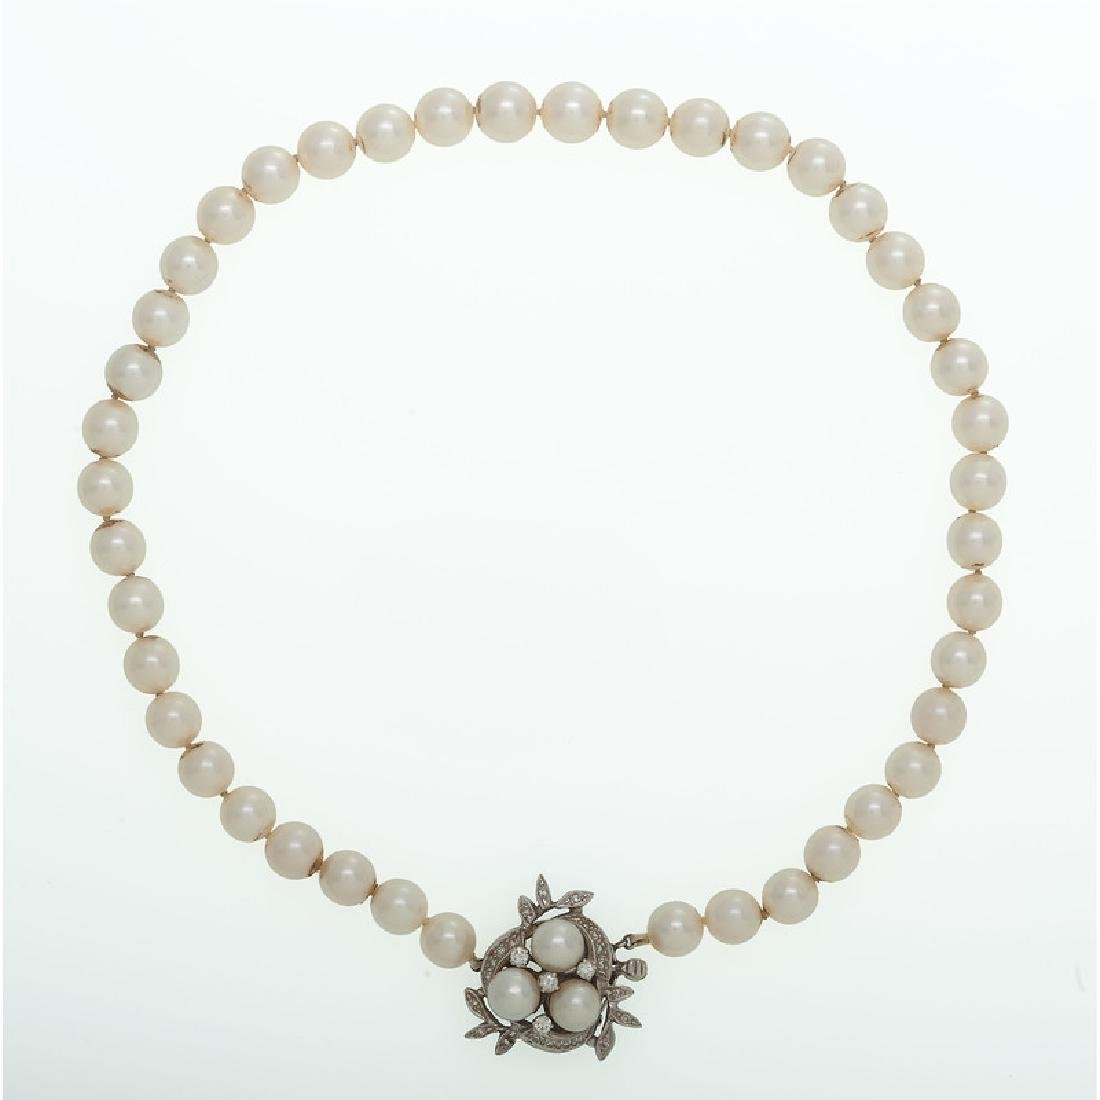 14 Karat White Gold Pearl Necklace and Brooch - 2